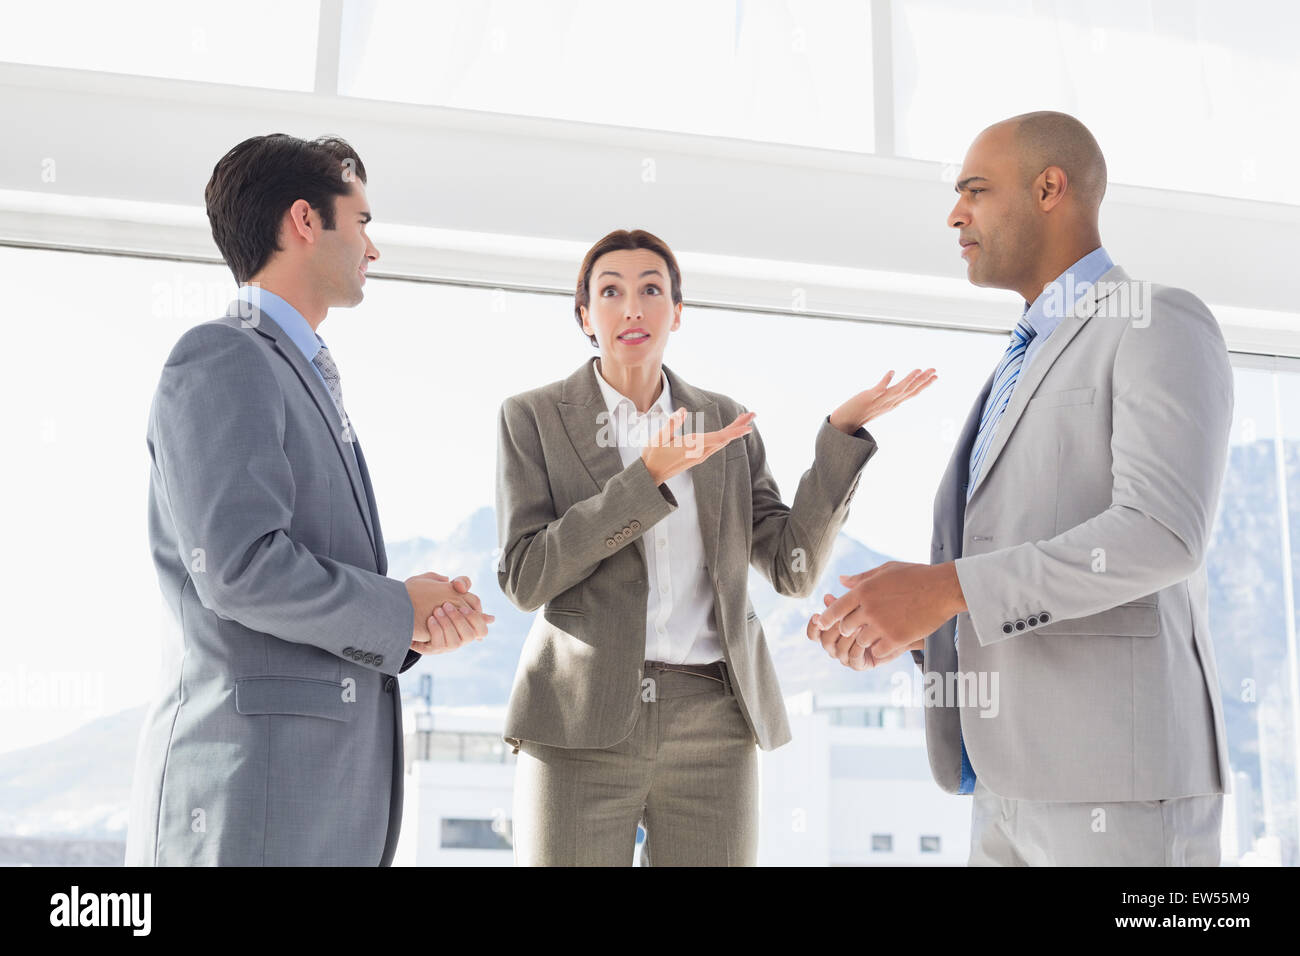 Business colleagues having a disagreement - Stock Image